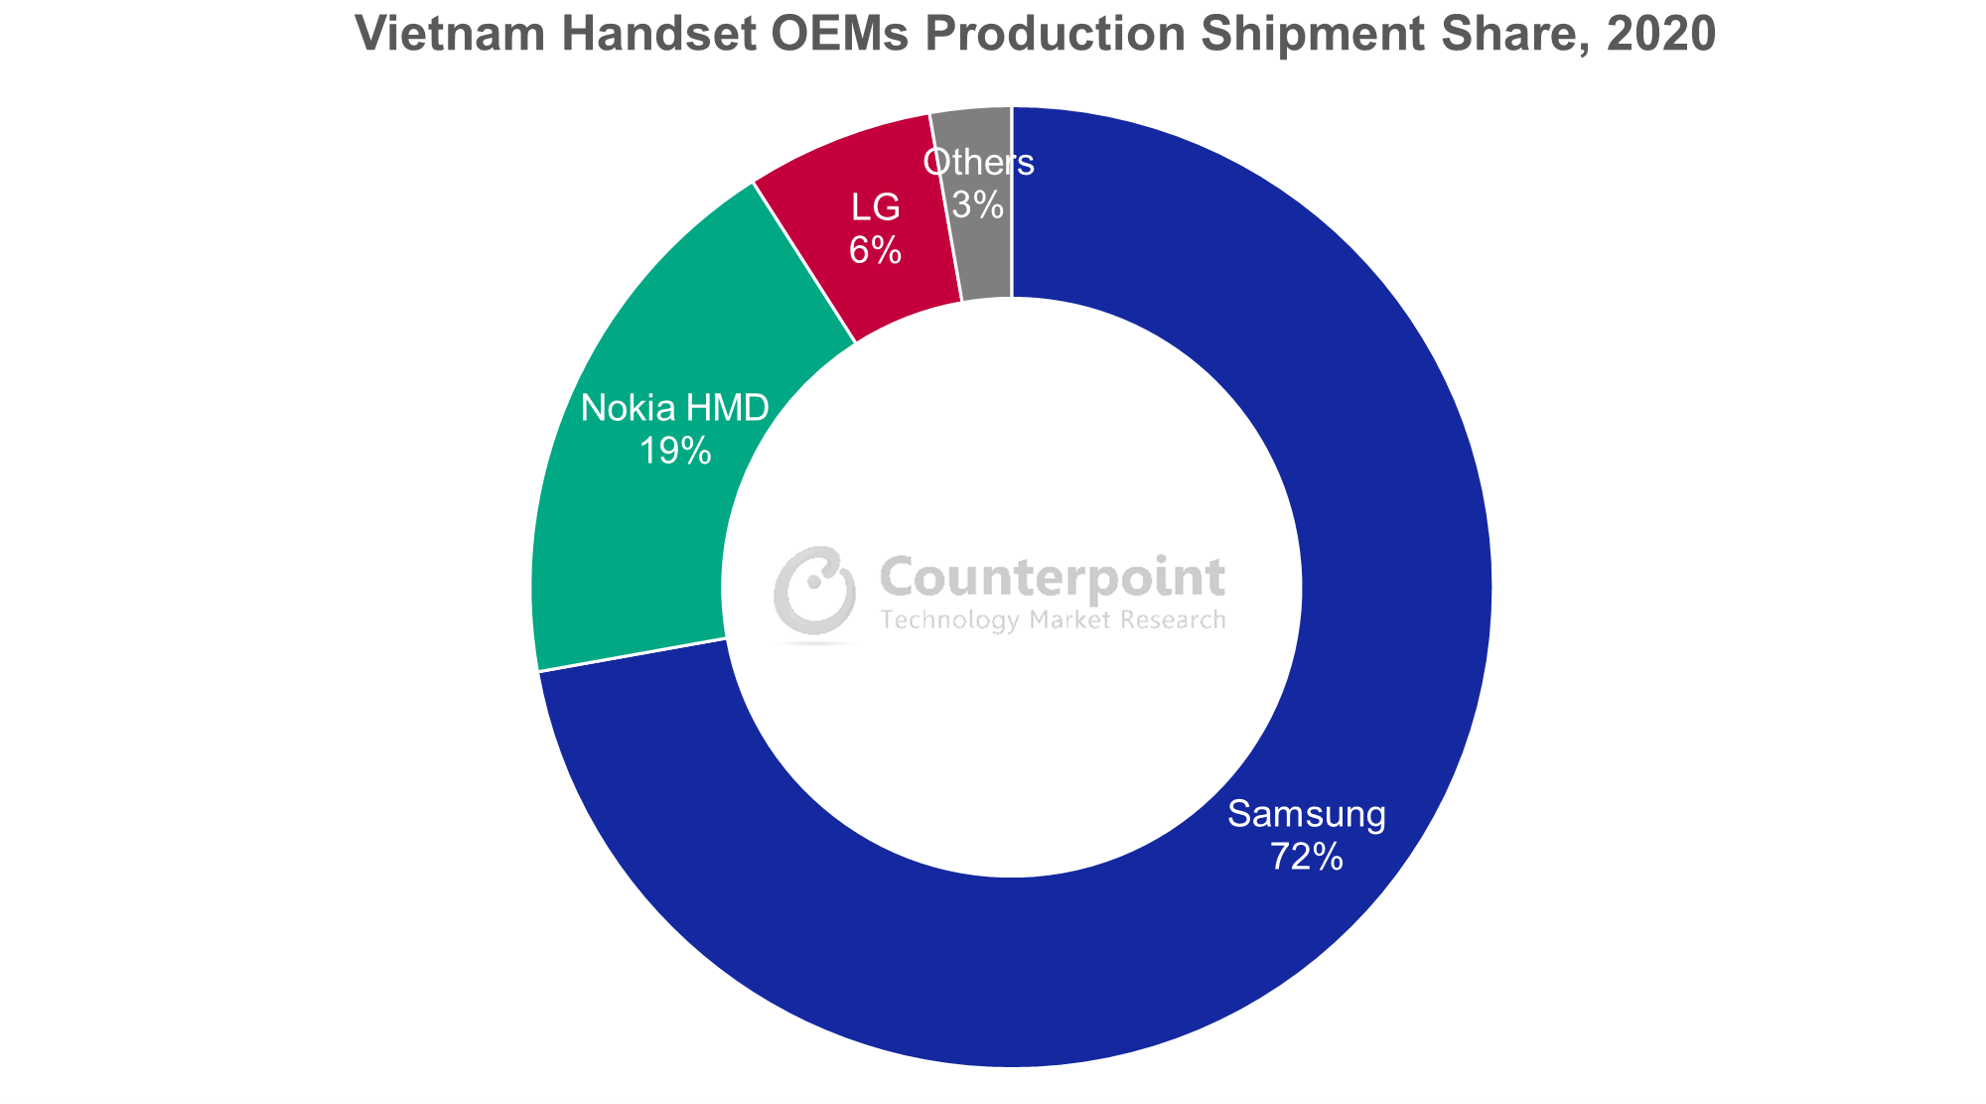 Counterpoint Research Vietnam Handset OEMs Production Shipment Share, 2020